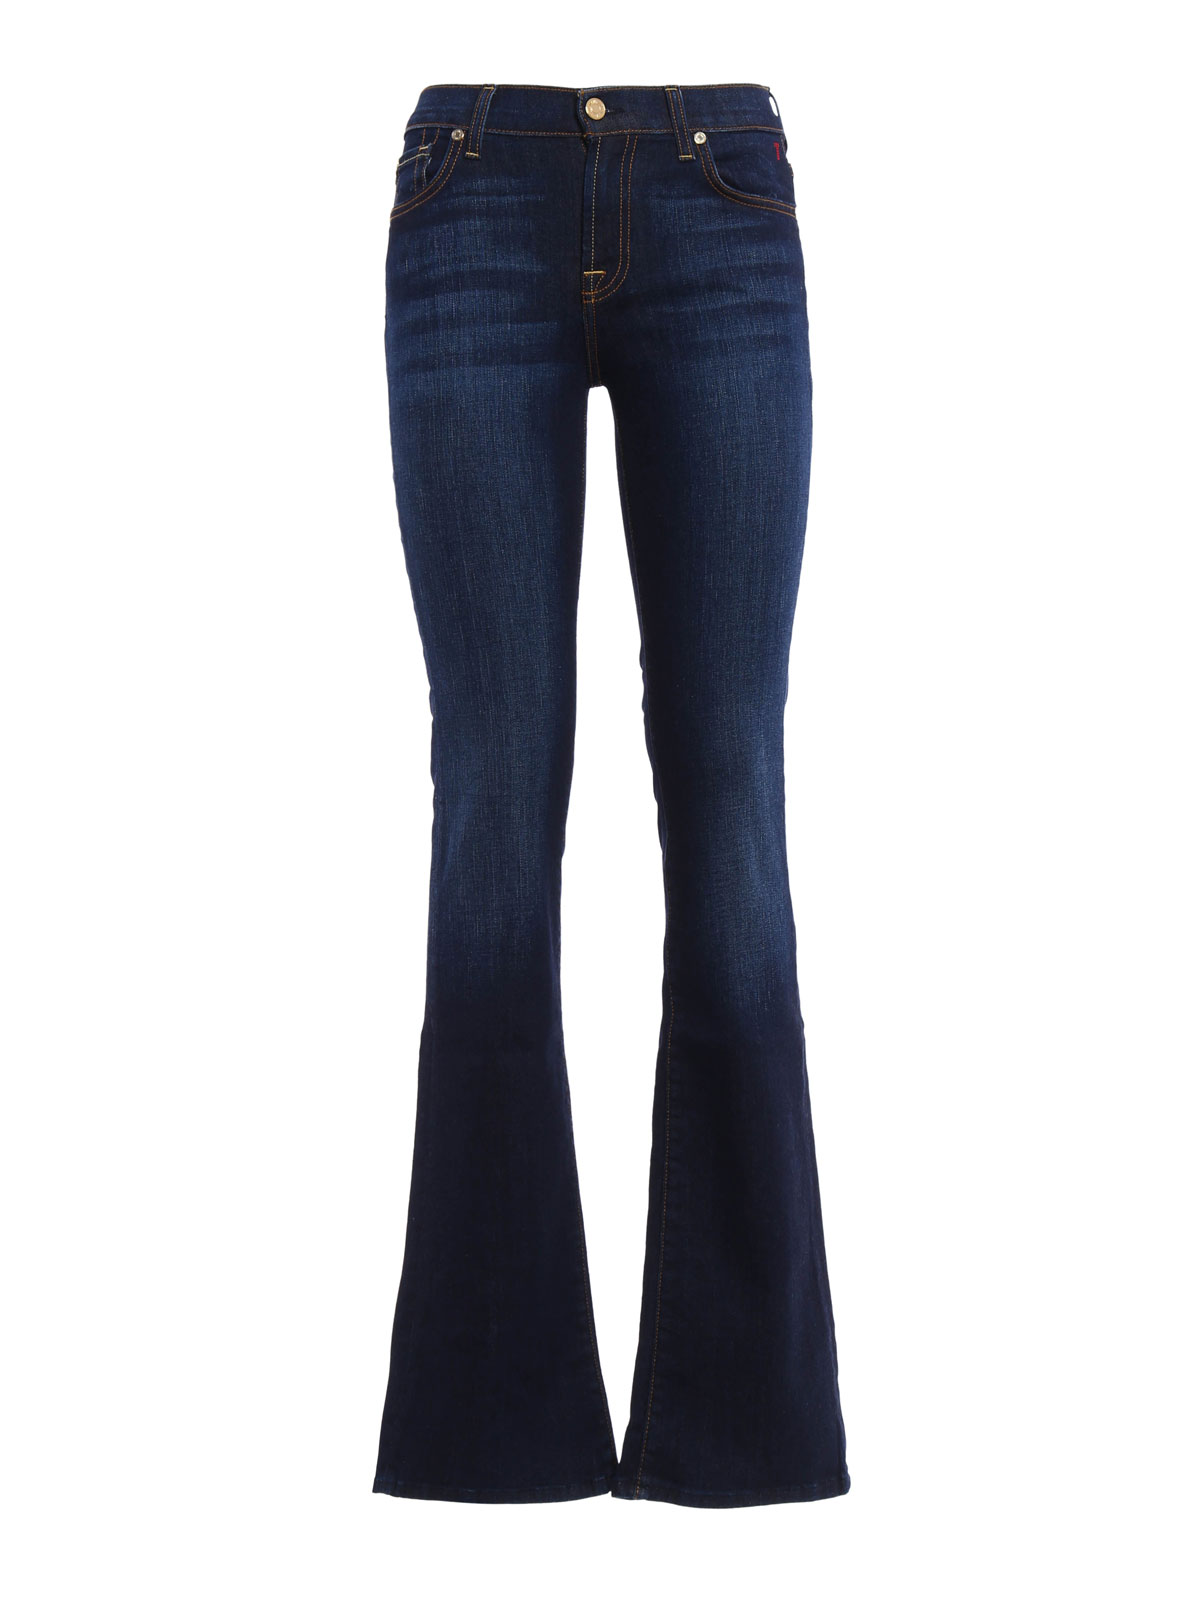 stretch bootcut jeans by 7 for all mankind bootcut jeans ikrix. Black Bedroom Furniture Sets. Home Design Ideas